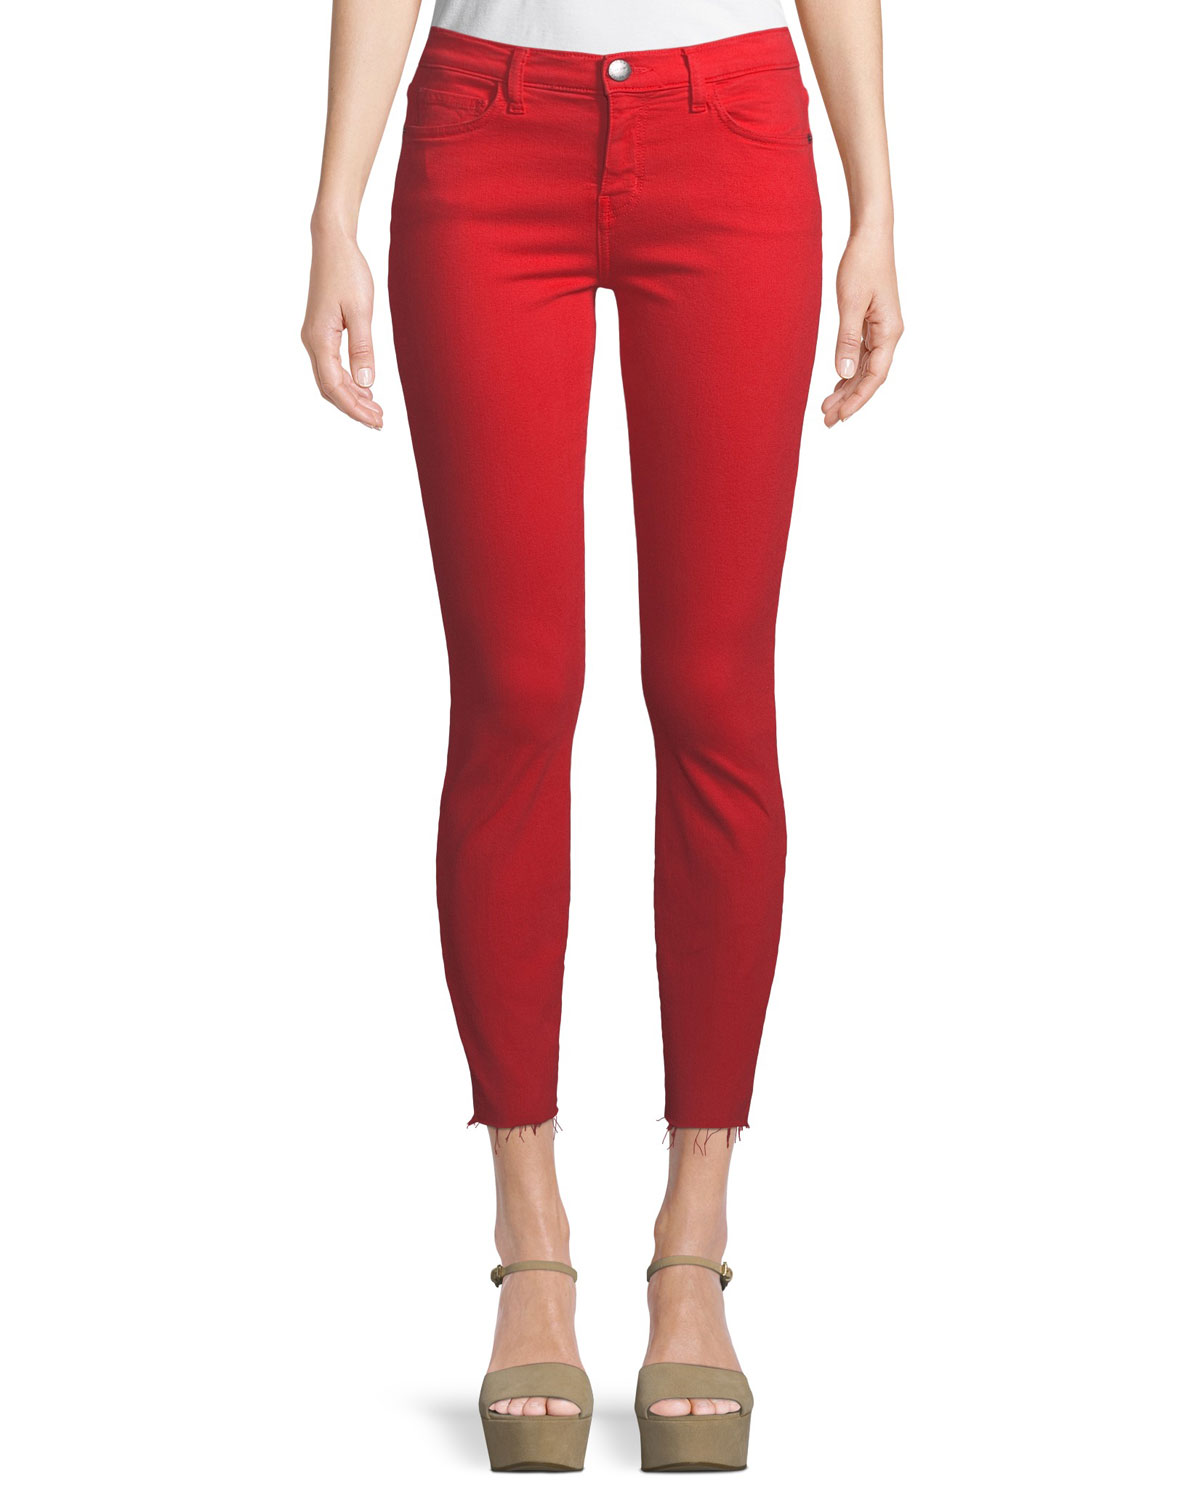 The Stiletto Skinny-Leg Jeans